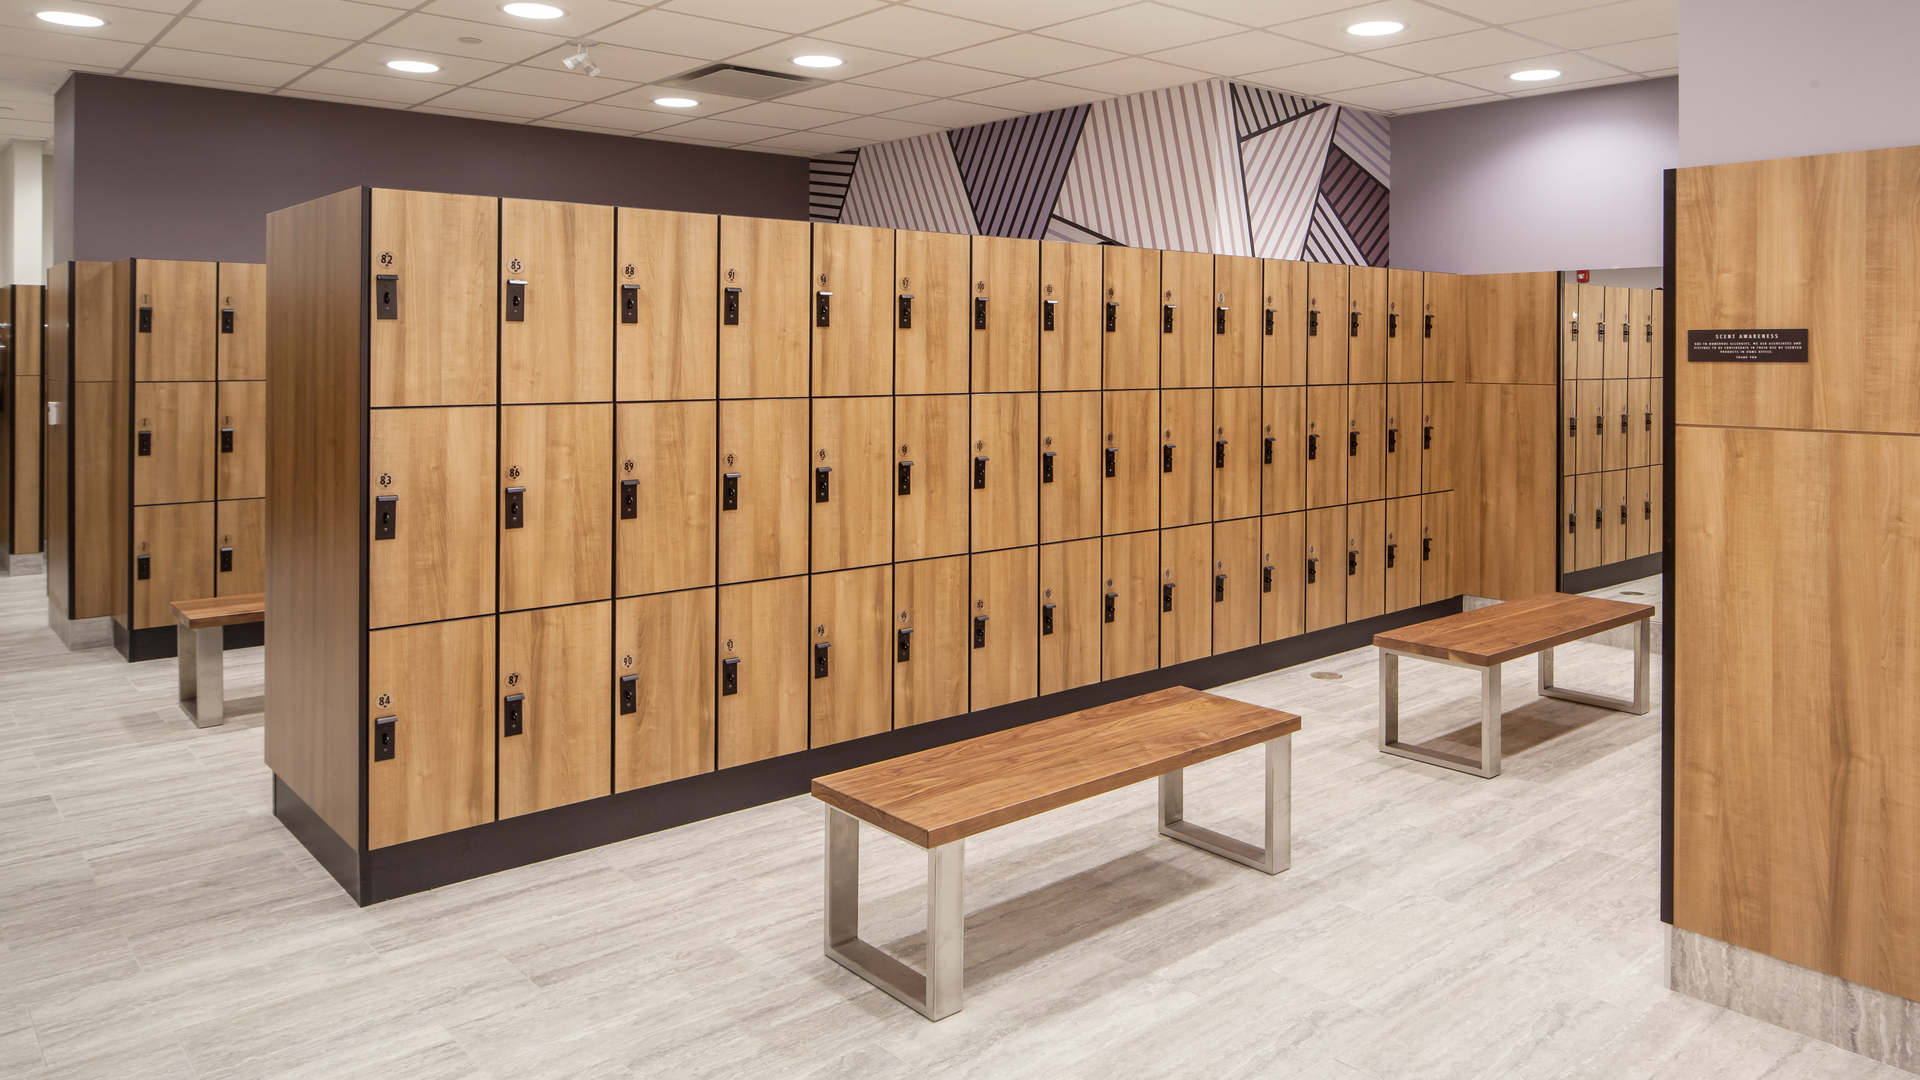 Phenolic Panels & Partitions. Bathrooms, Locker Rooms and Changing Rooms that Wow